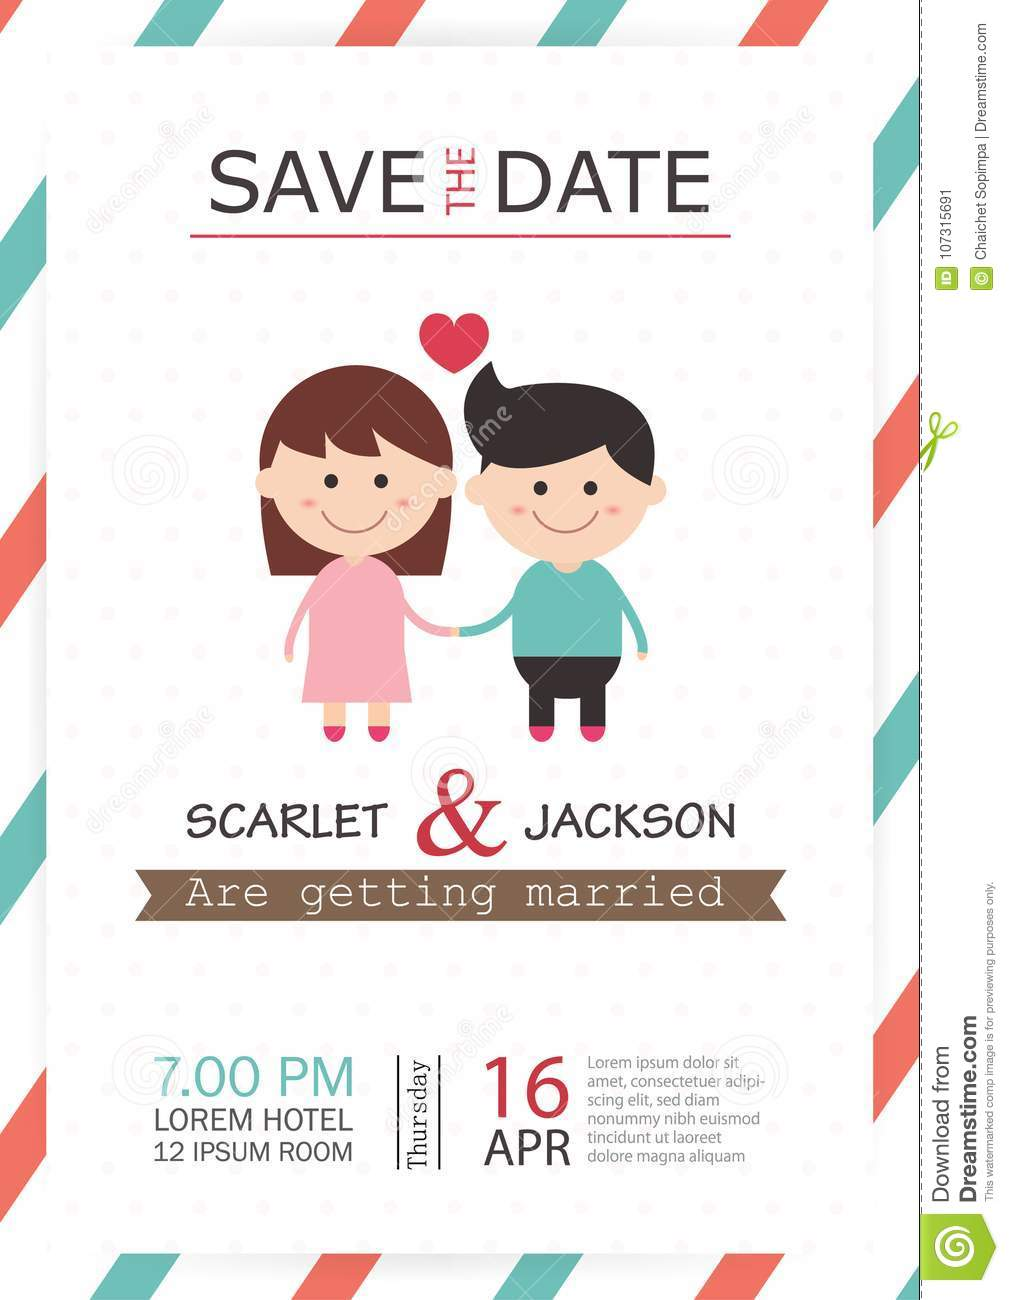 ✓ free for commercial use ✓ high. Wedding Invitation Card Template Vector Illustration Wedding Invitation Card Editable With Background Save The Date Font Stock Vector Illustration Of Background Graphic 107315691